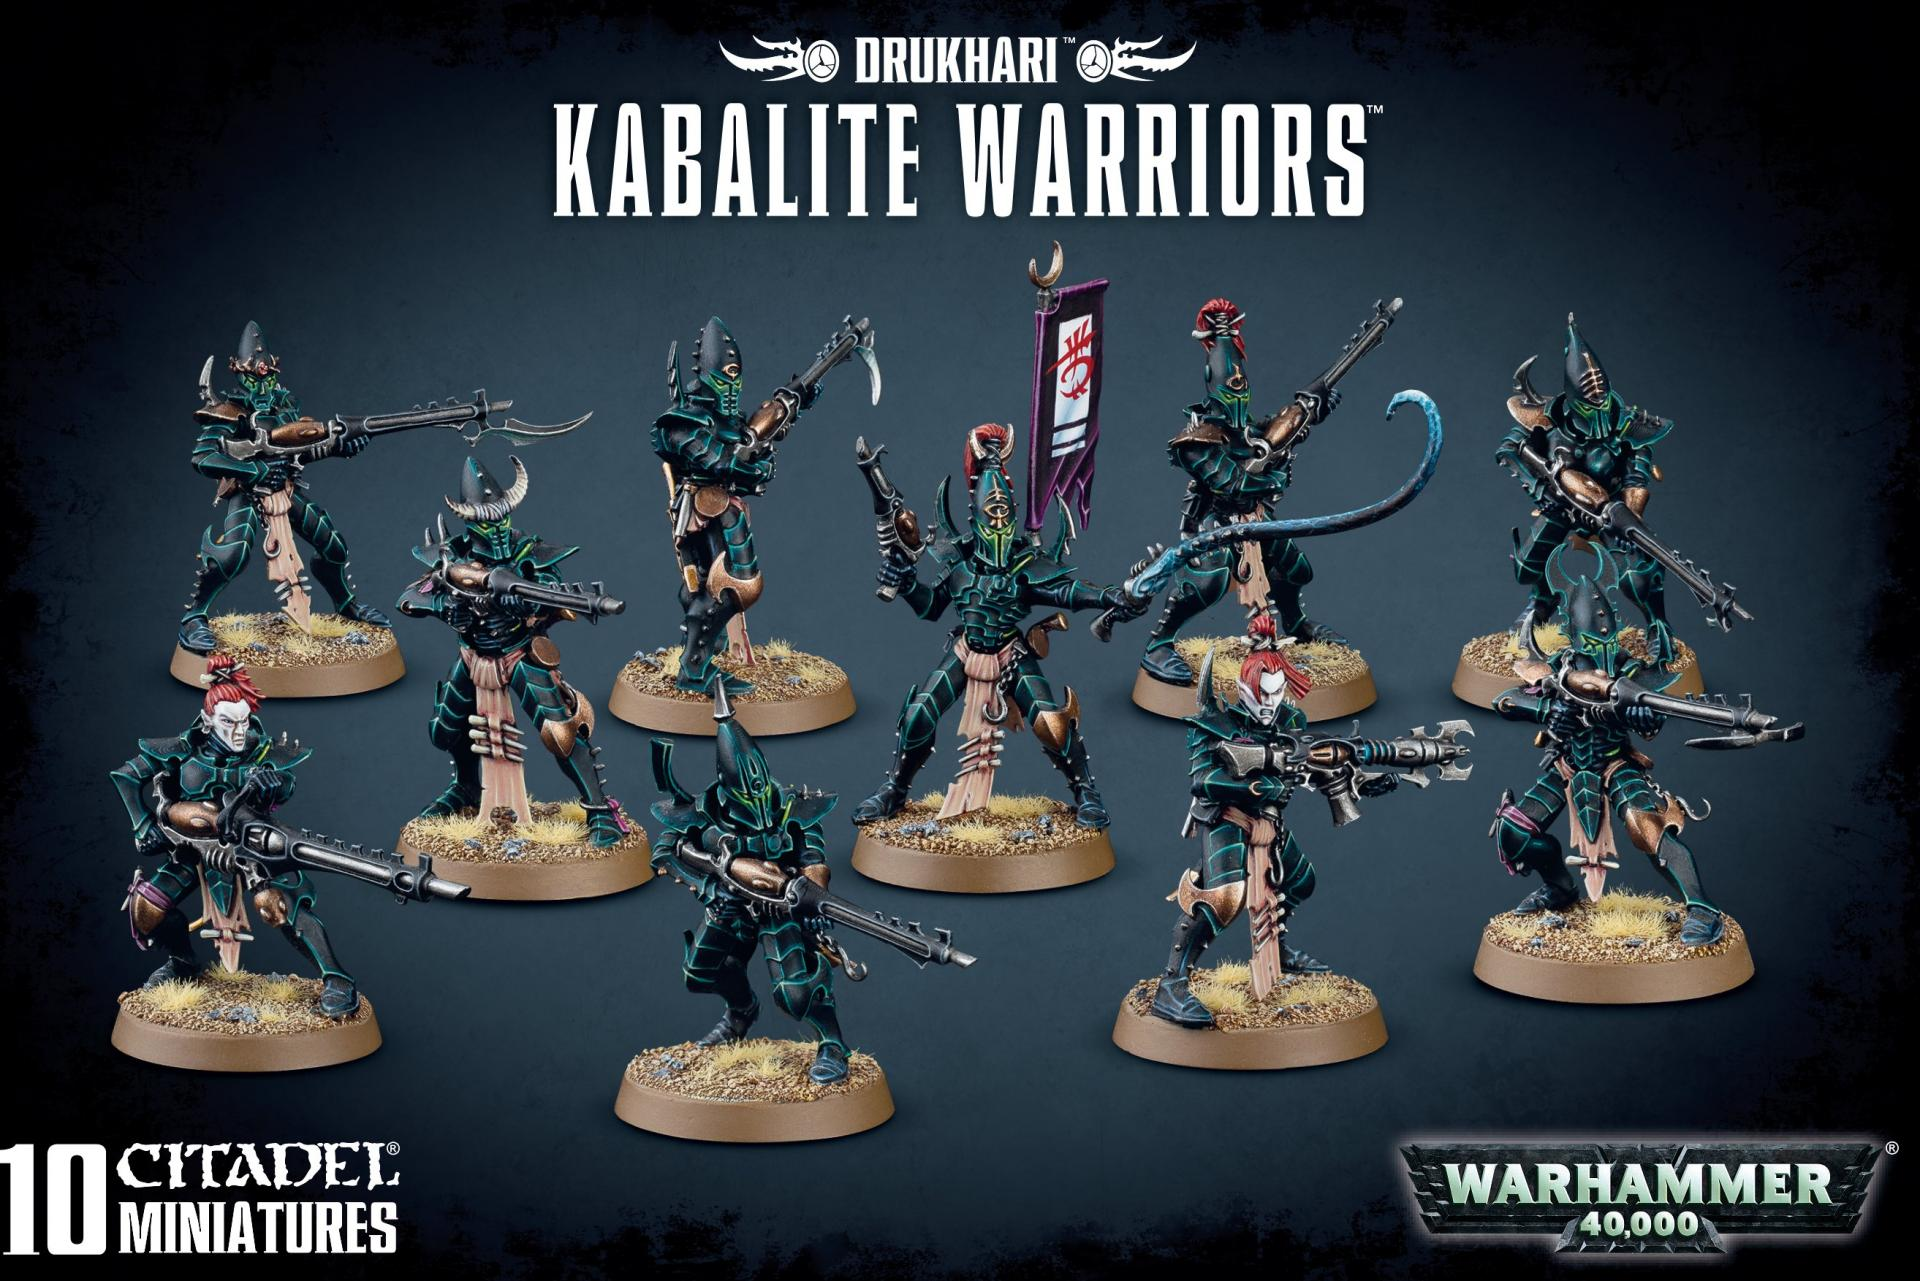 Https trade games workshop com assets 2019 05 drukhari kabalite warriors